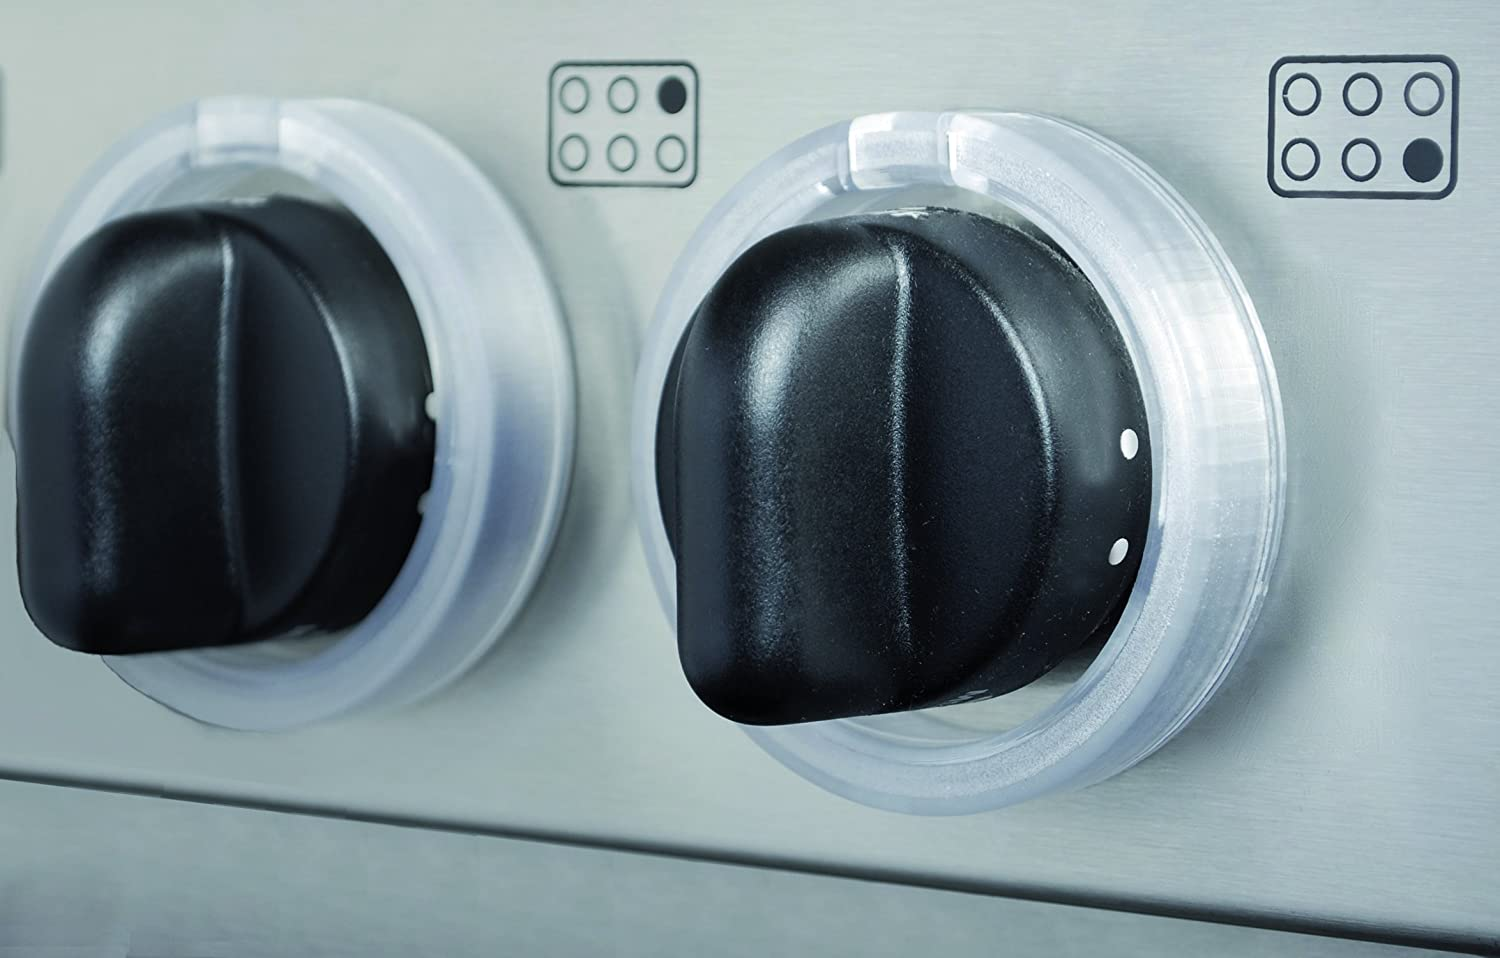 Superbe Amazon.com : KidKusion Stove Lock, Clear, 5 Count : Gas Stove Knob Safety :  Baby